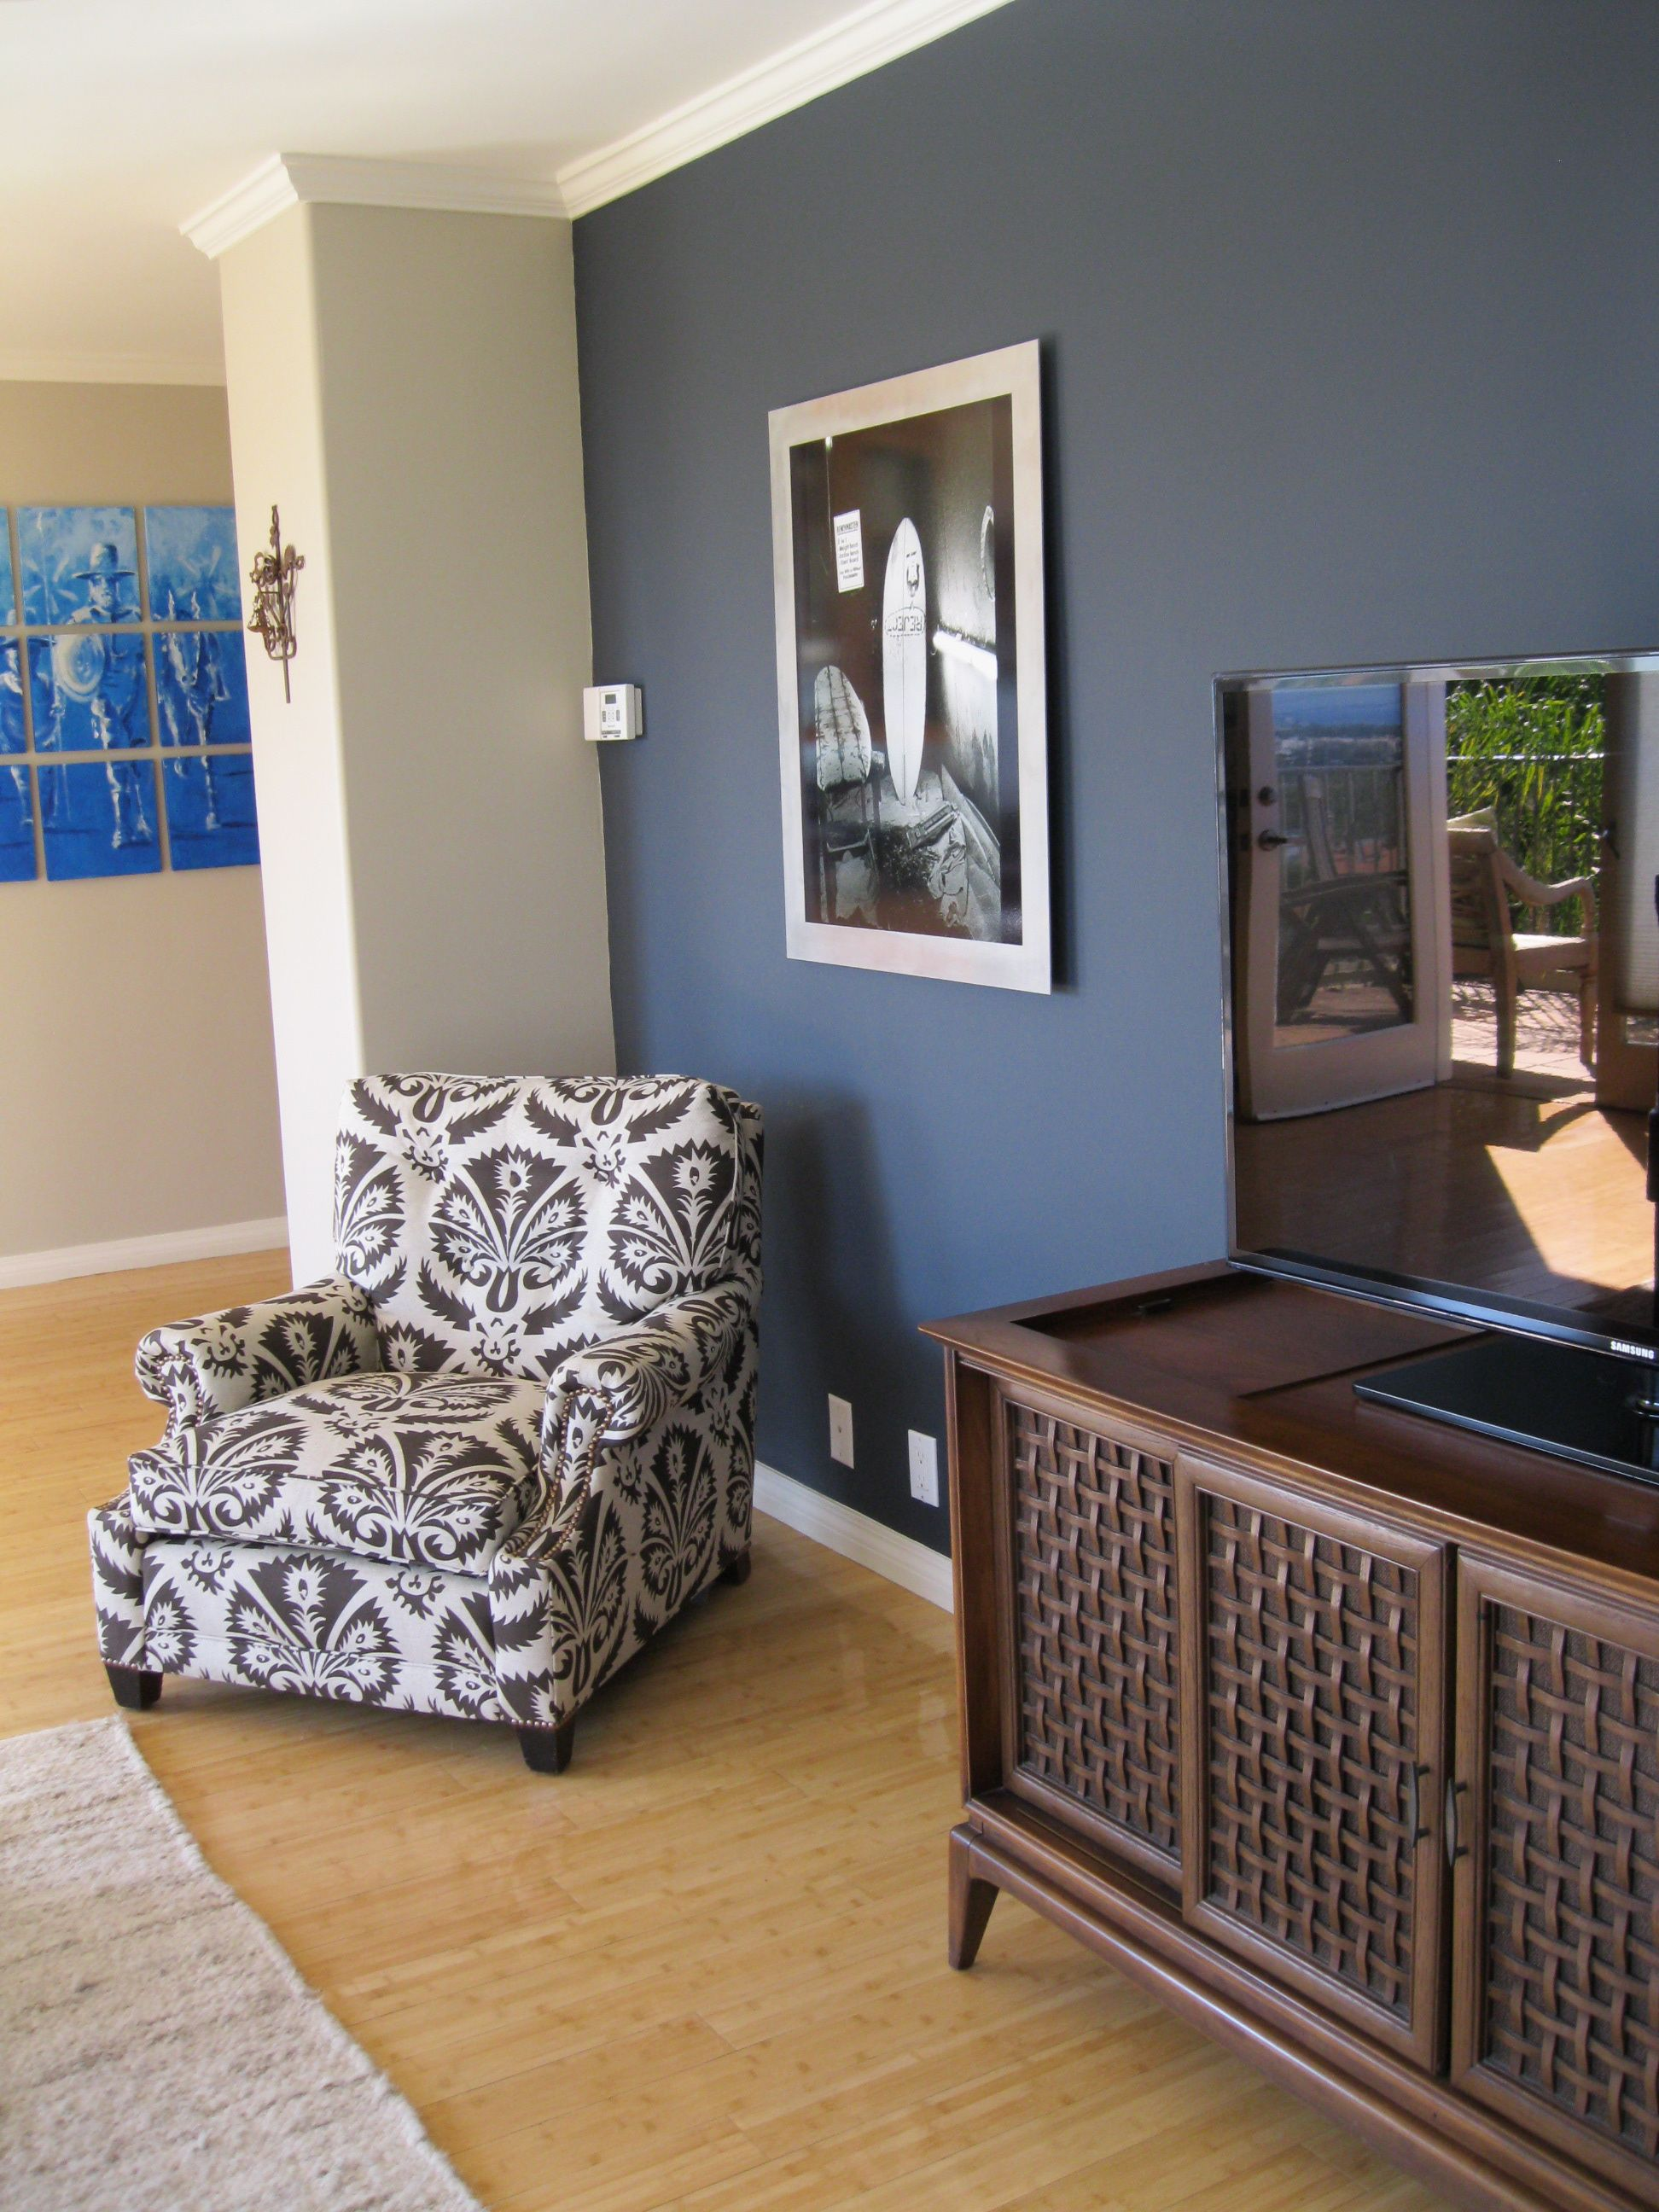 Best Shade Of Blue On Wall Camoflauges Tv Love The Chair Too 640 x 480